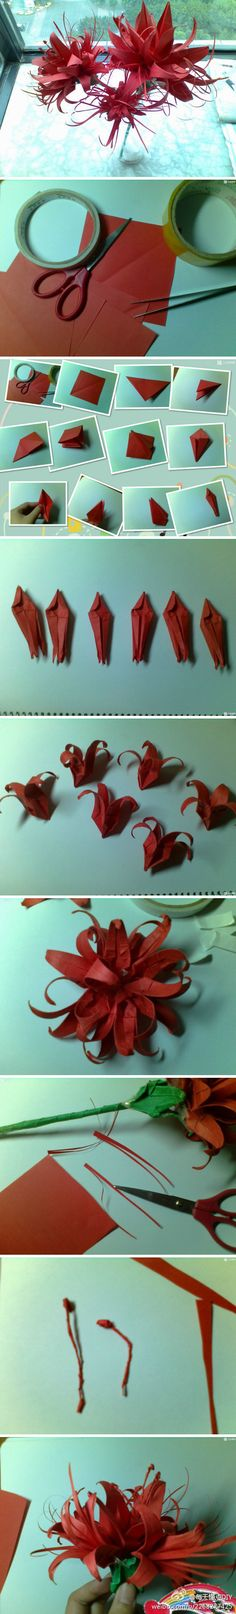 折纸花  -  Origami red paper flower DIY Tutorial craft Decor idea cool # FLOR DE PAPEL ROJA EXPLICACIONES MANUALIDAD PAPIROFLEXIA DECORACION ELEGANTE LINDA